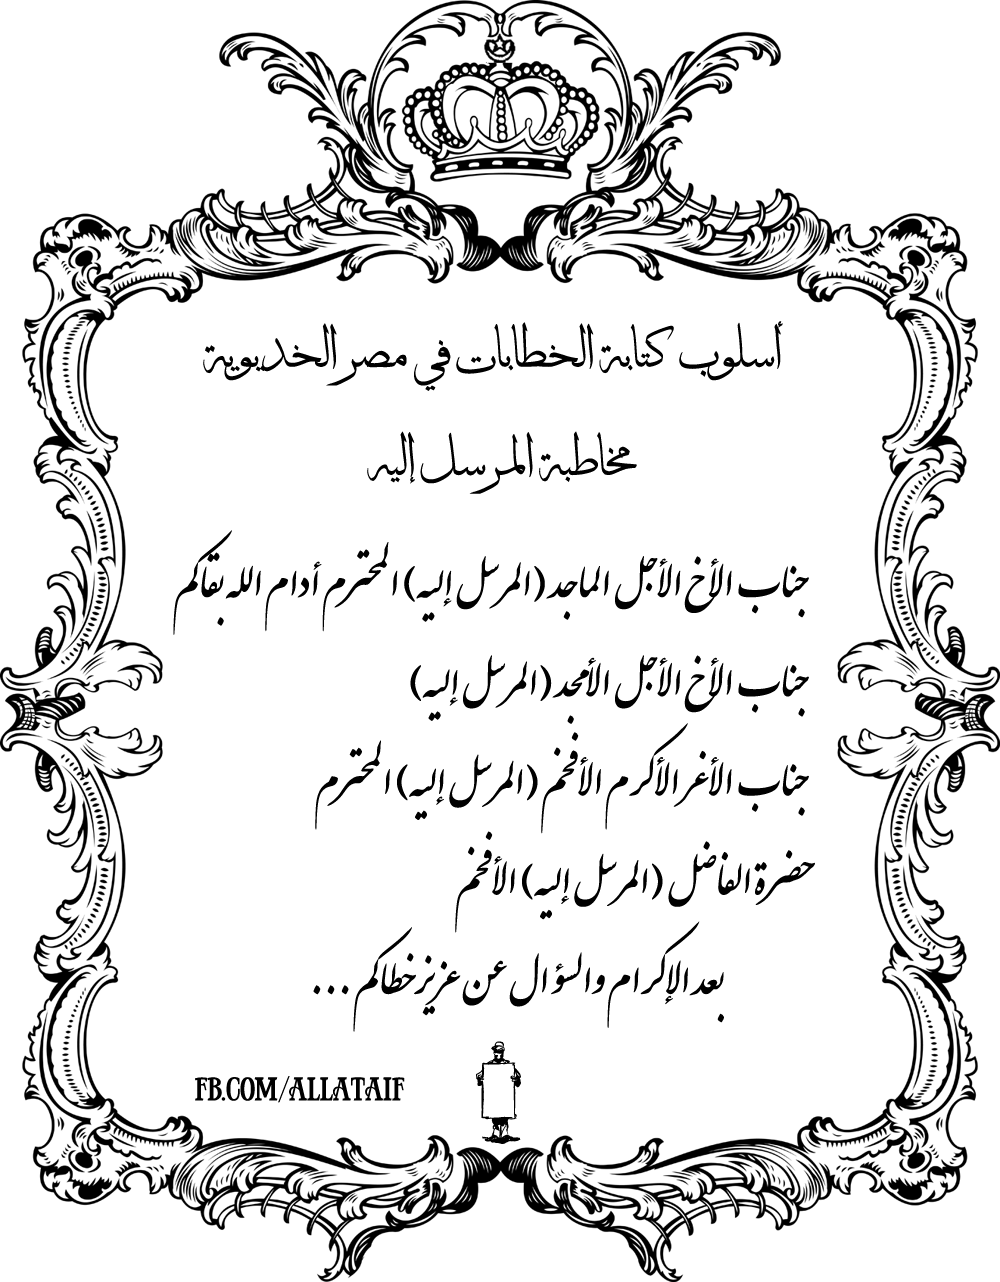 سلسلة اللطائف المصورة - صفحة 2 Egyptian-Letter-Recipient-Addressing-Style-Khedivial-Era